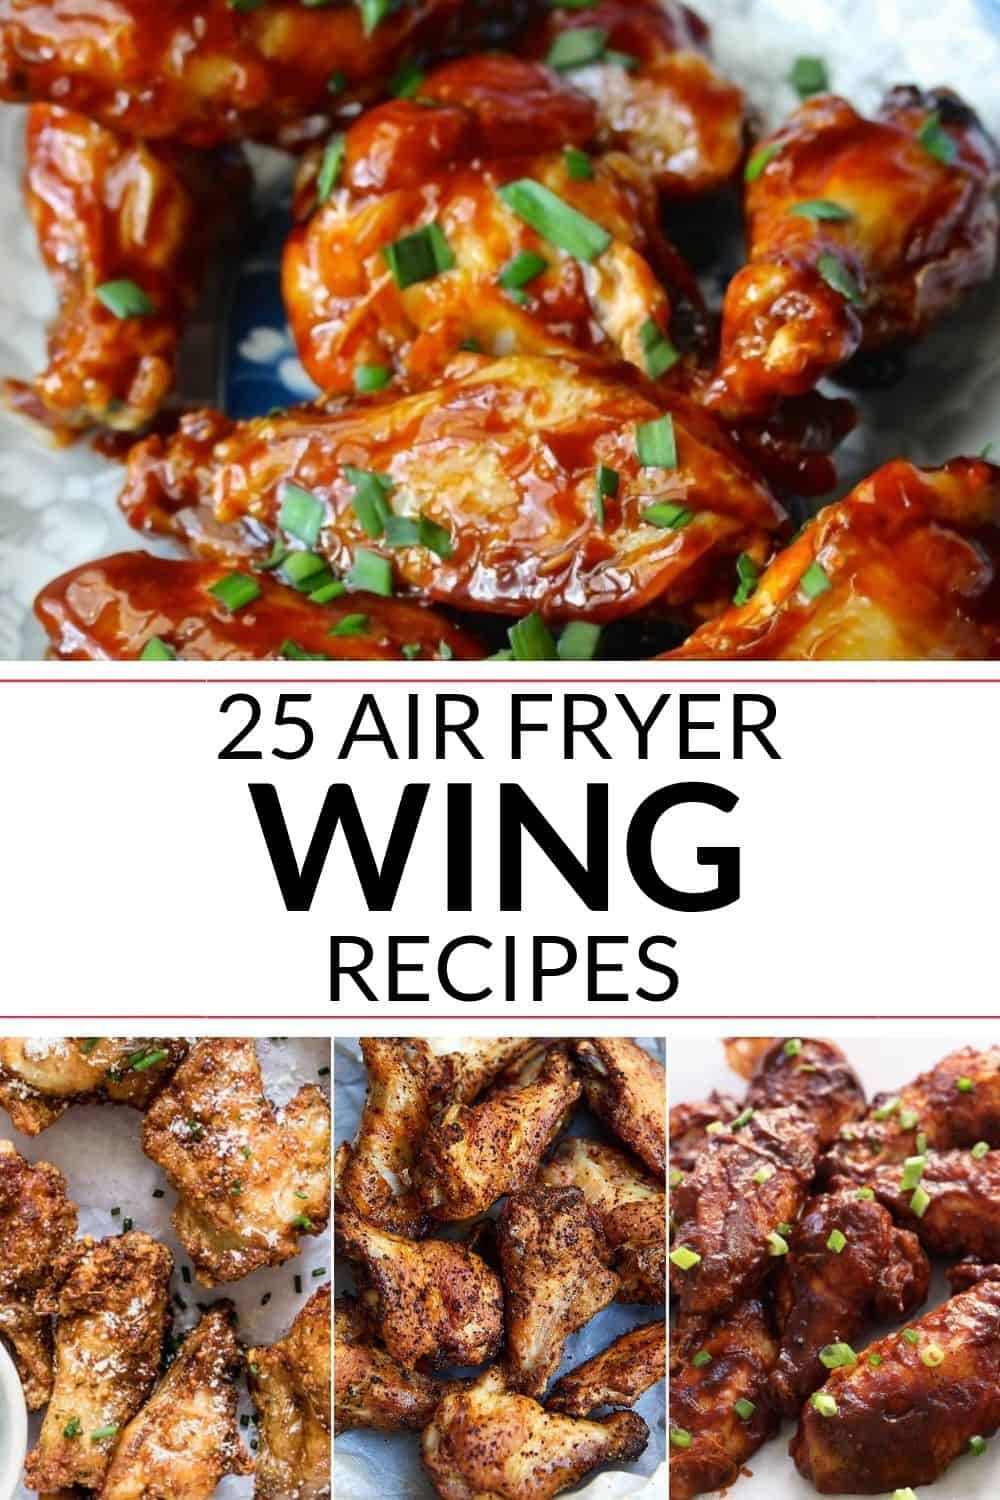 Try these amazing and easy air fryer wings recipes for your next wing night! These incredible and mouth watering wings are made in the air fryer and covered in incredible sauces. #itisakeeper #airfyer #wings #gameday #airfryerrecipes